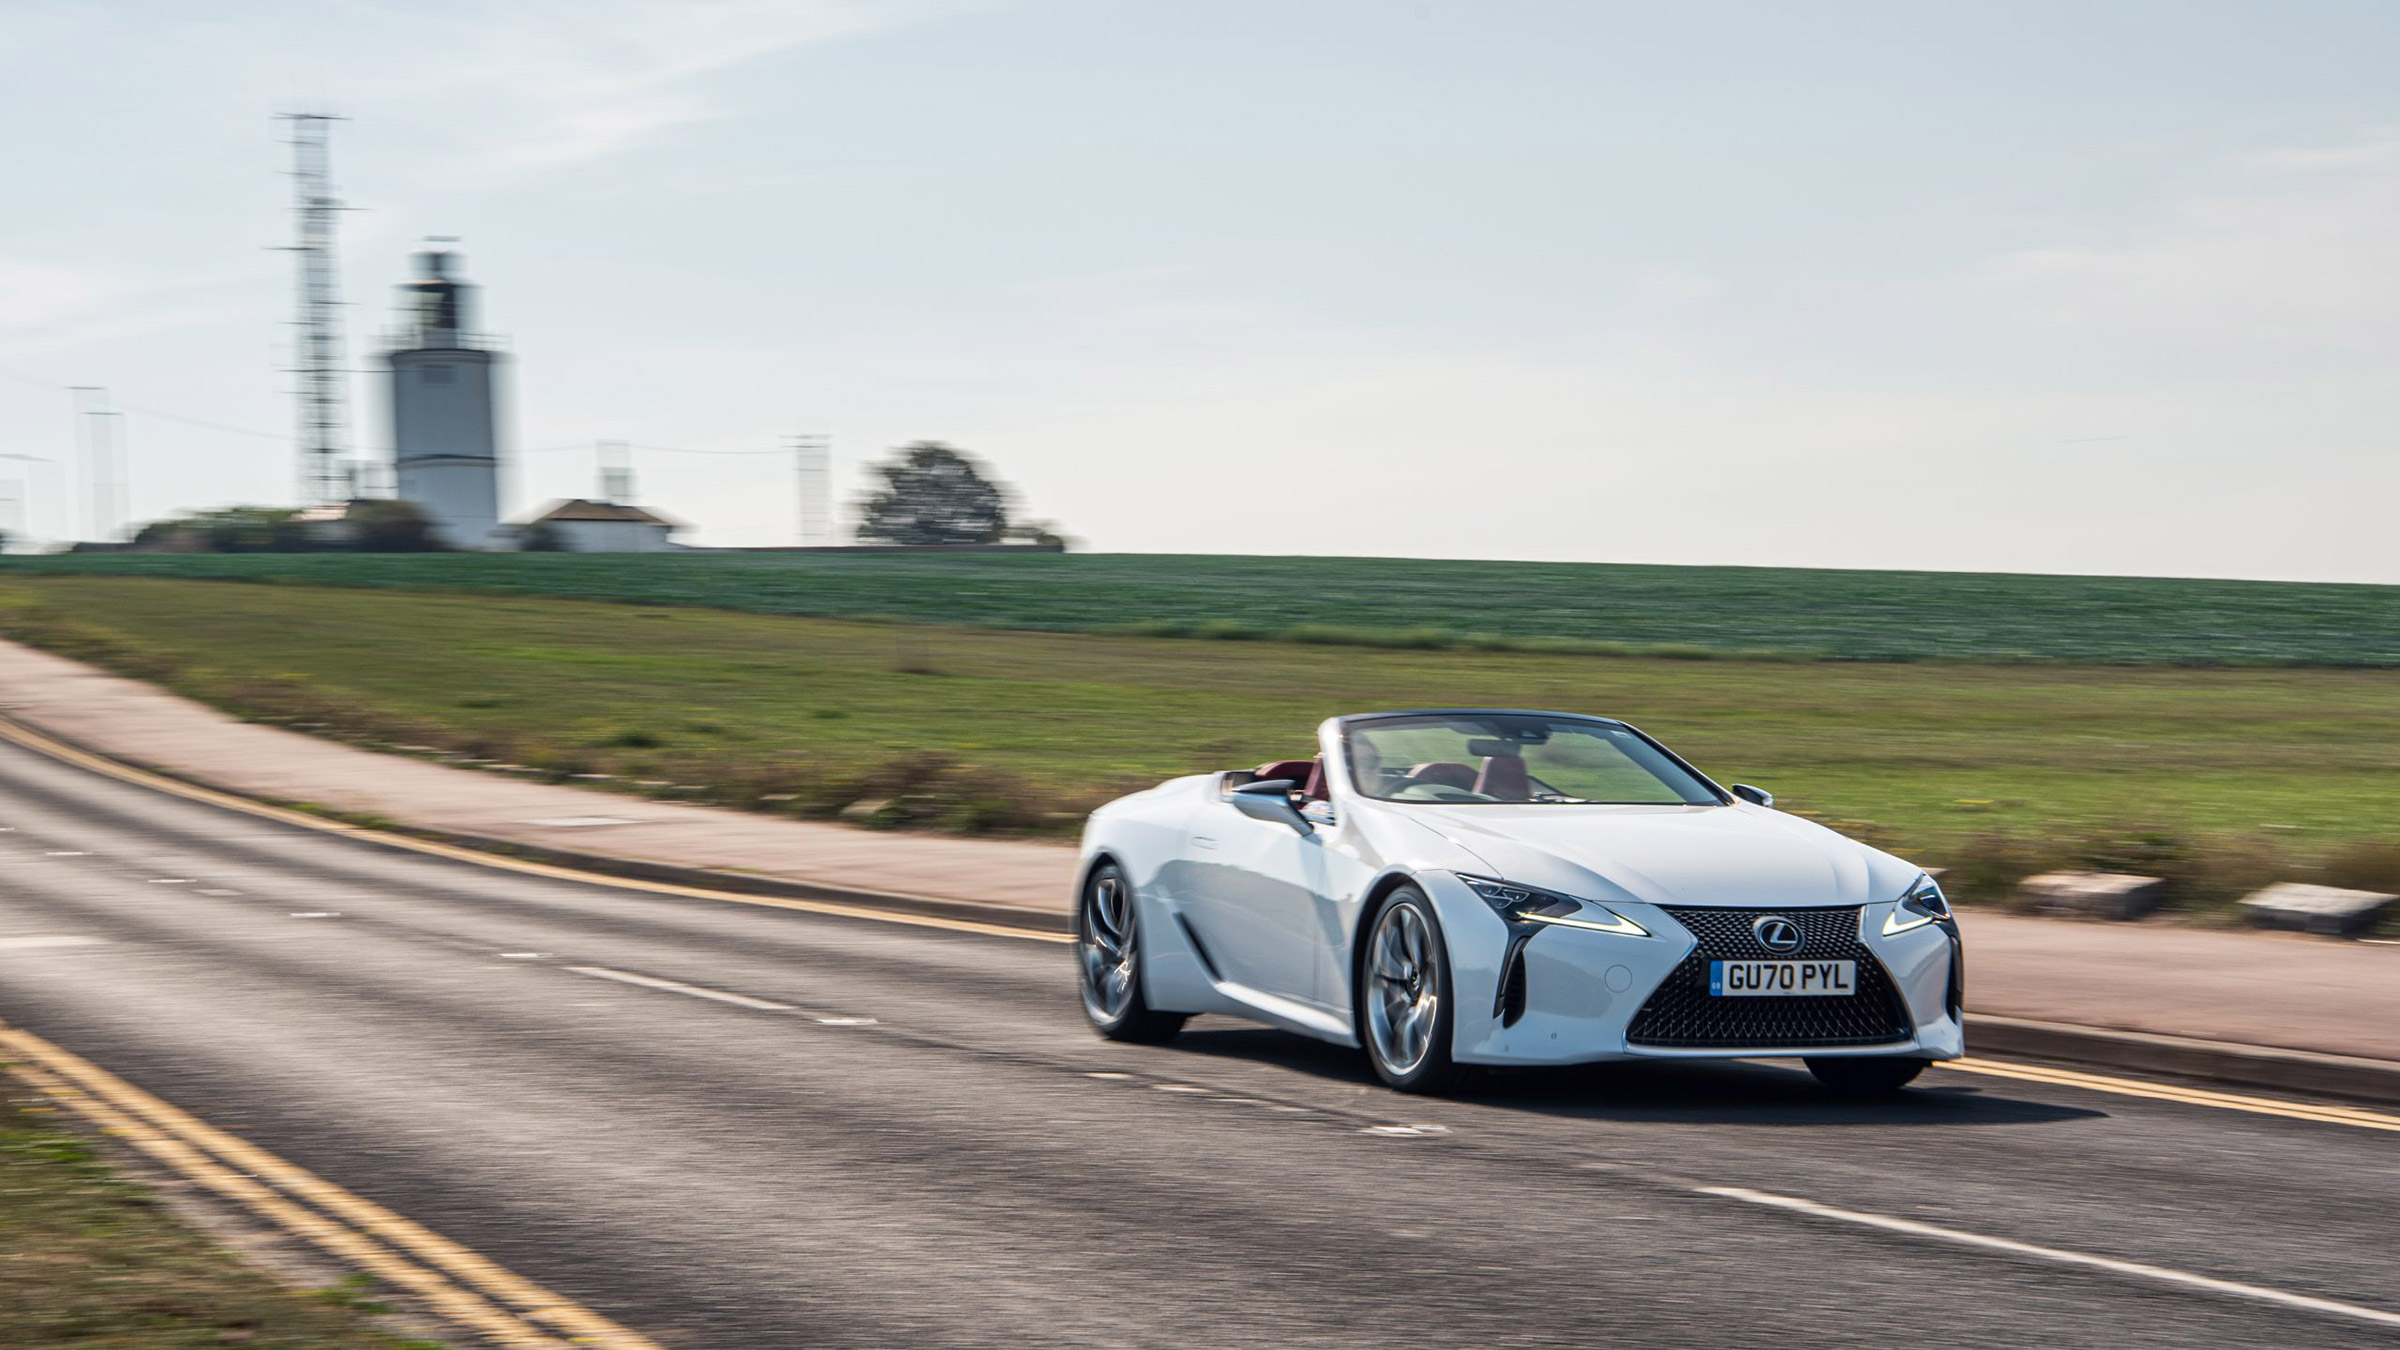 Lexus Lc500 Convertible 2020 Review Eccentric Cabriolet Is As Glamorous As It Looks Evo